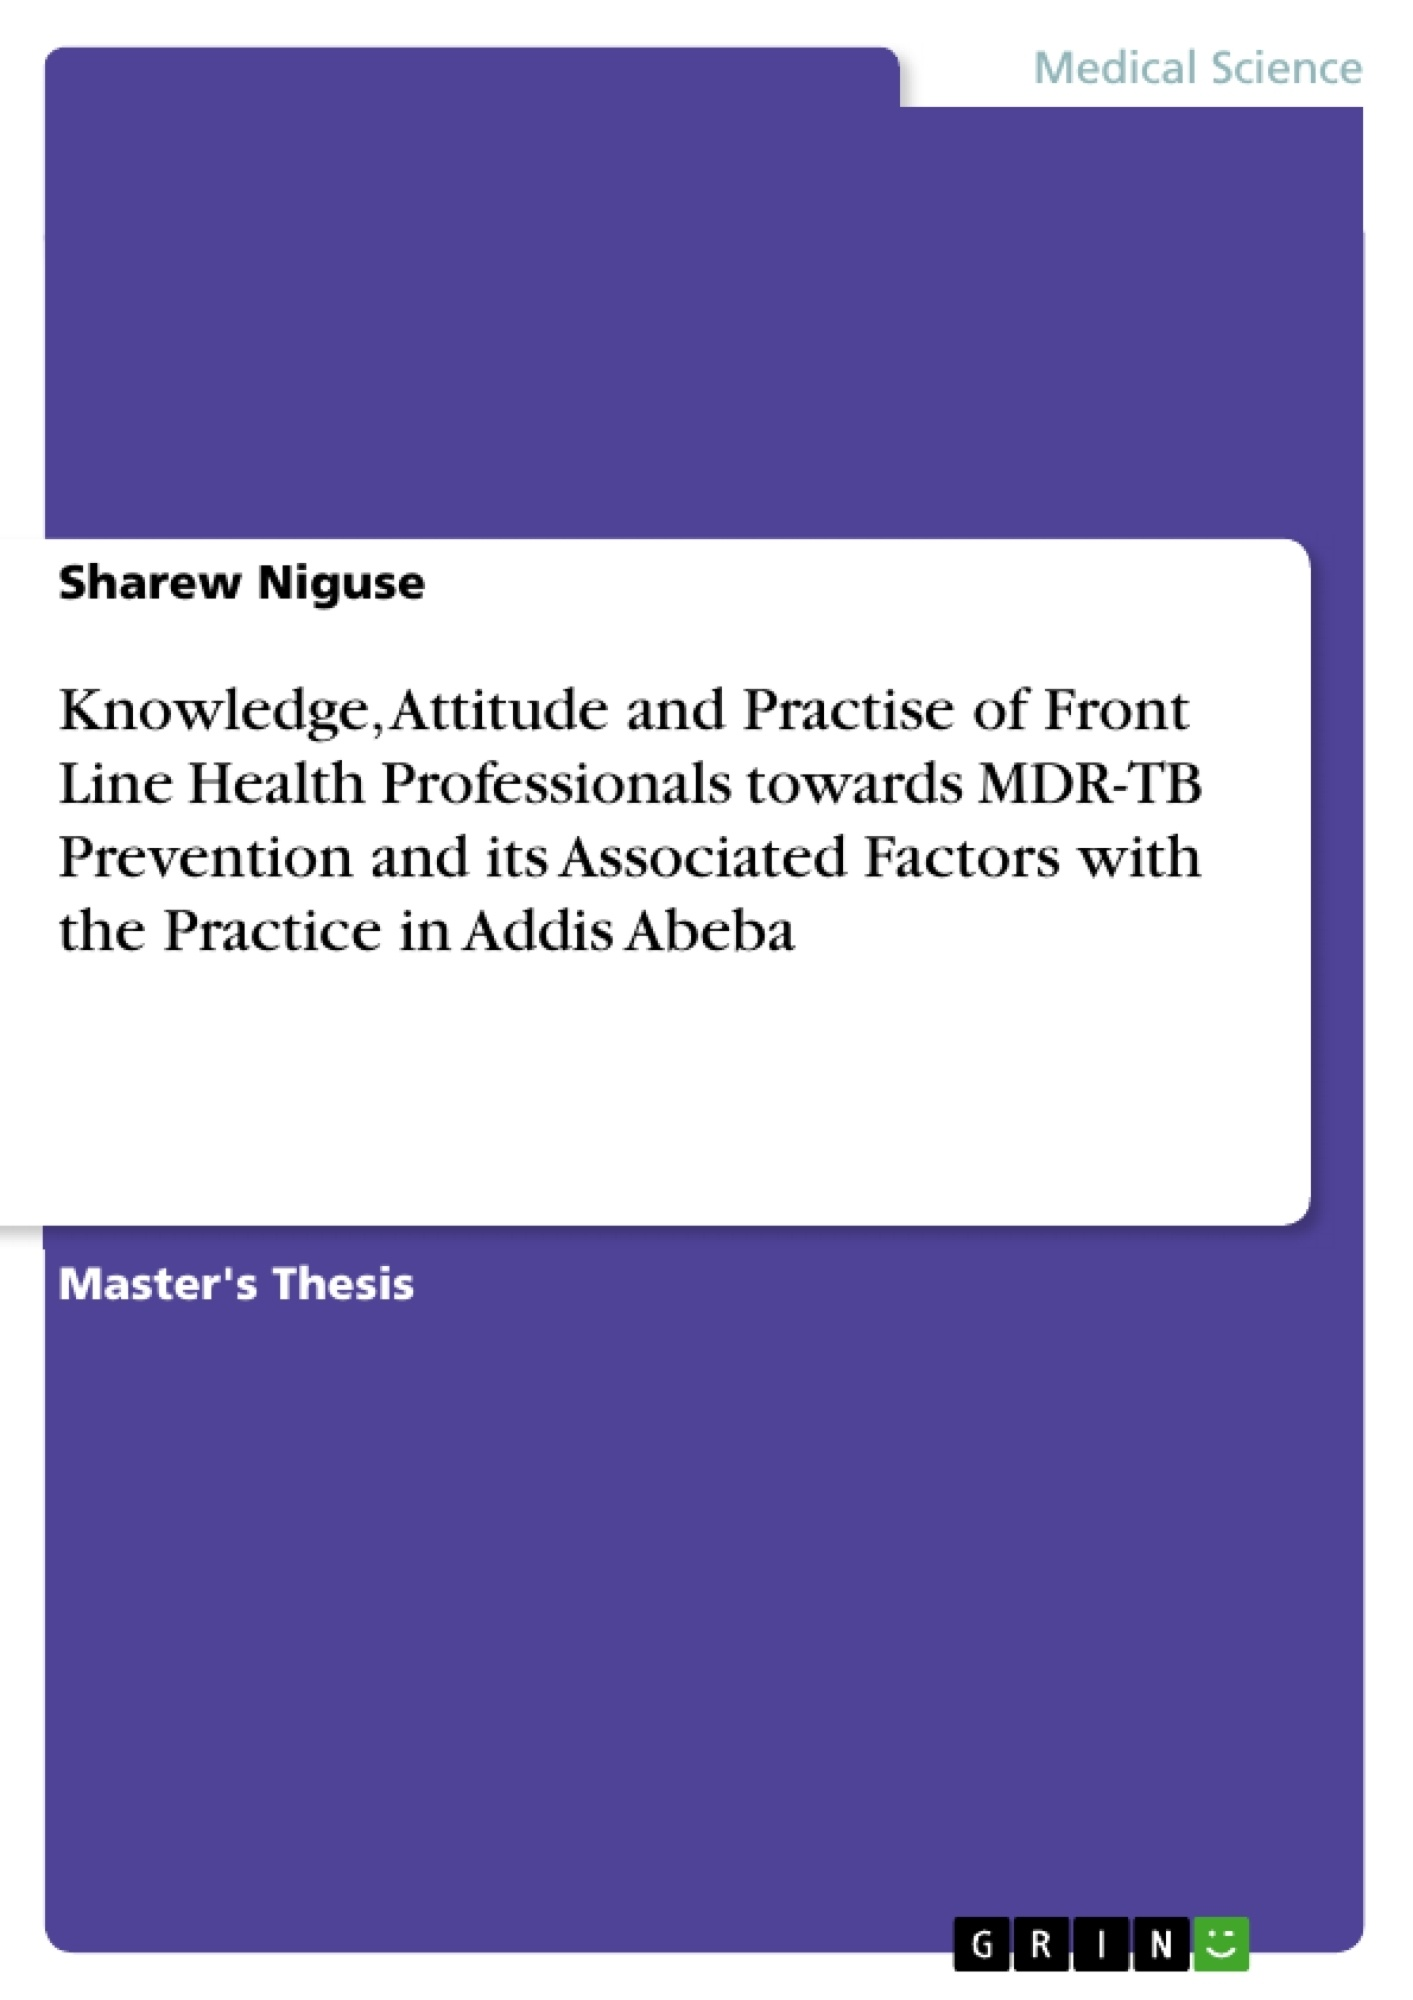 Title: Knowledge, Attitude and Practise of Front Line Health Professionals towards MDR-TB Prevention and its Associated Factors with the Practice in Addis Abeba